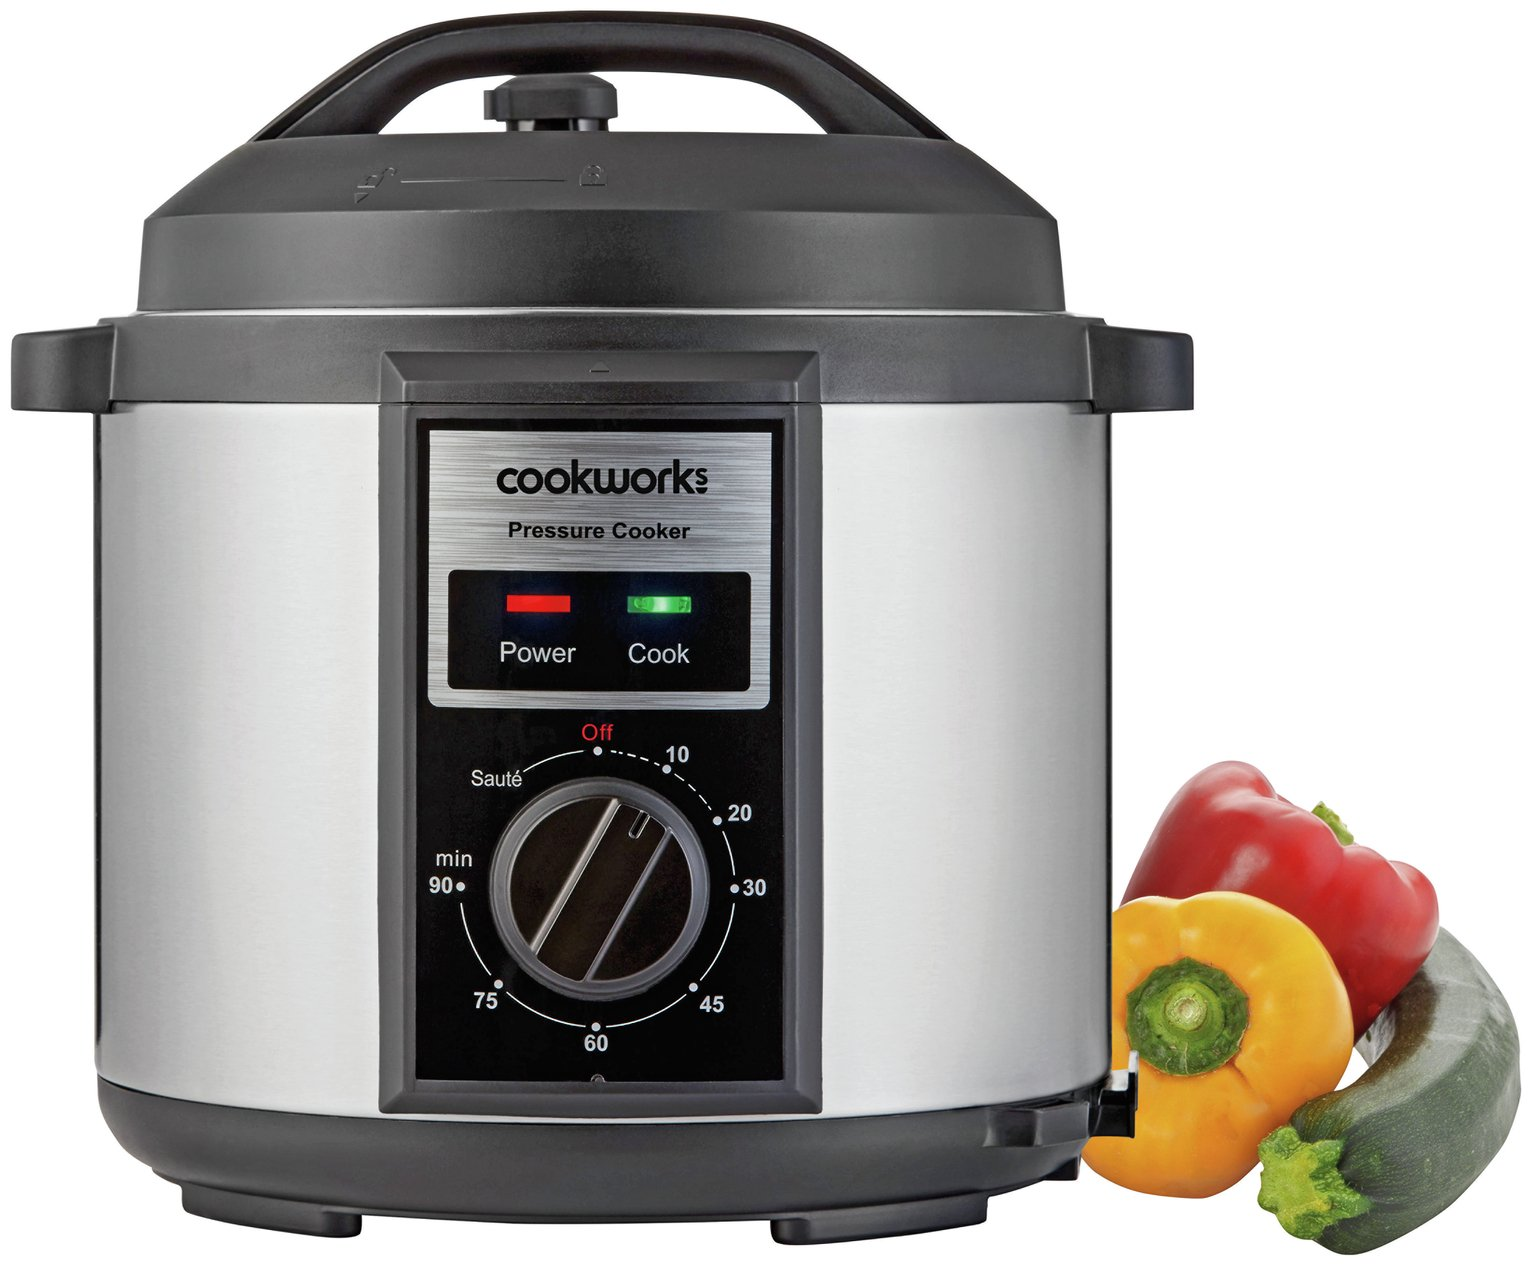 Image of Cookworks Pressure Cooker with Manual Display